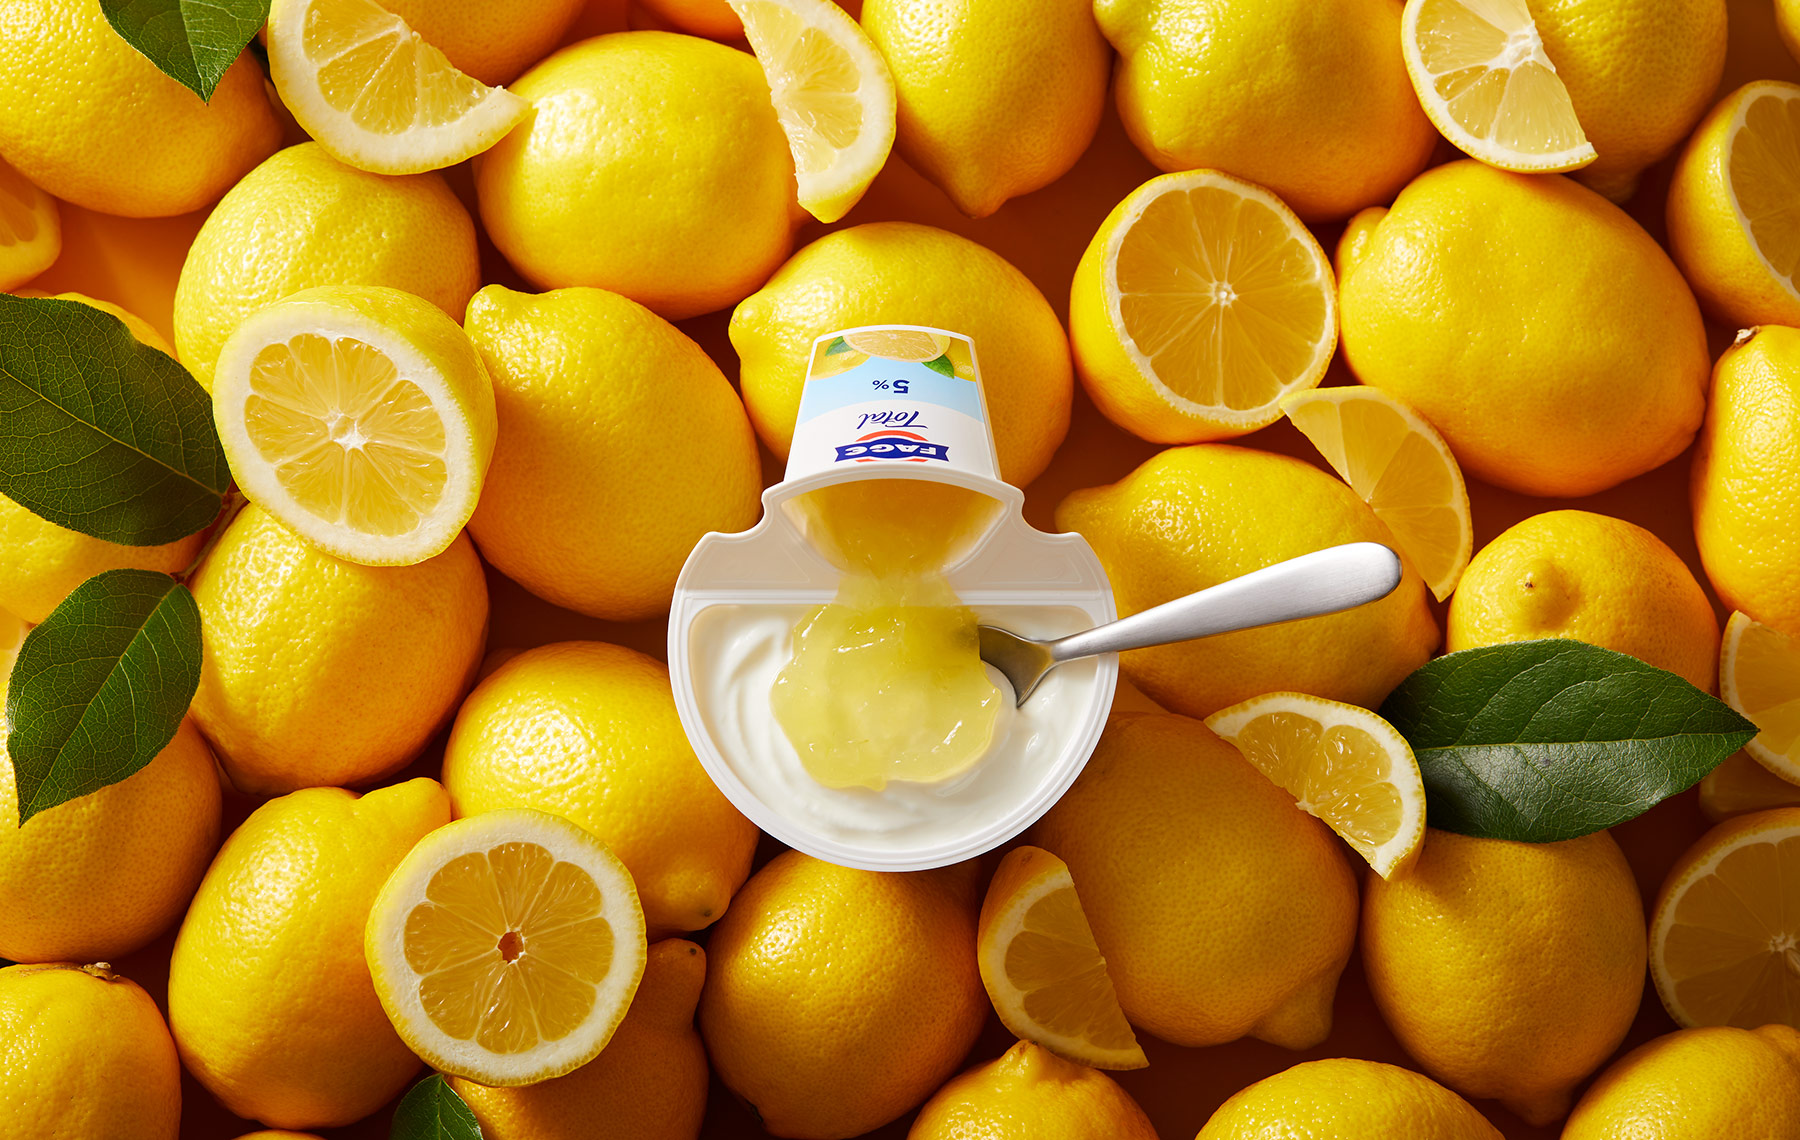 Fage_June18_CX_Lemon_DUO_Hero_GIF_0979_RTF